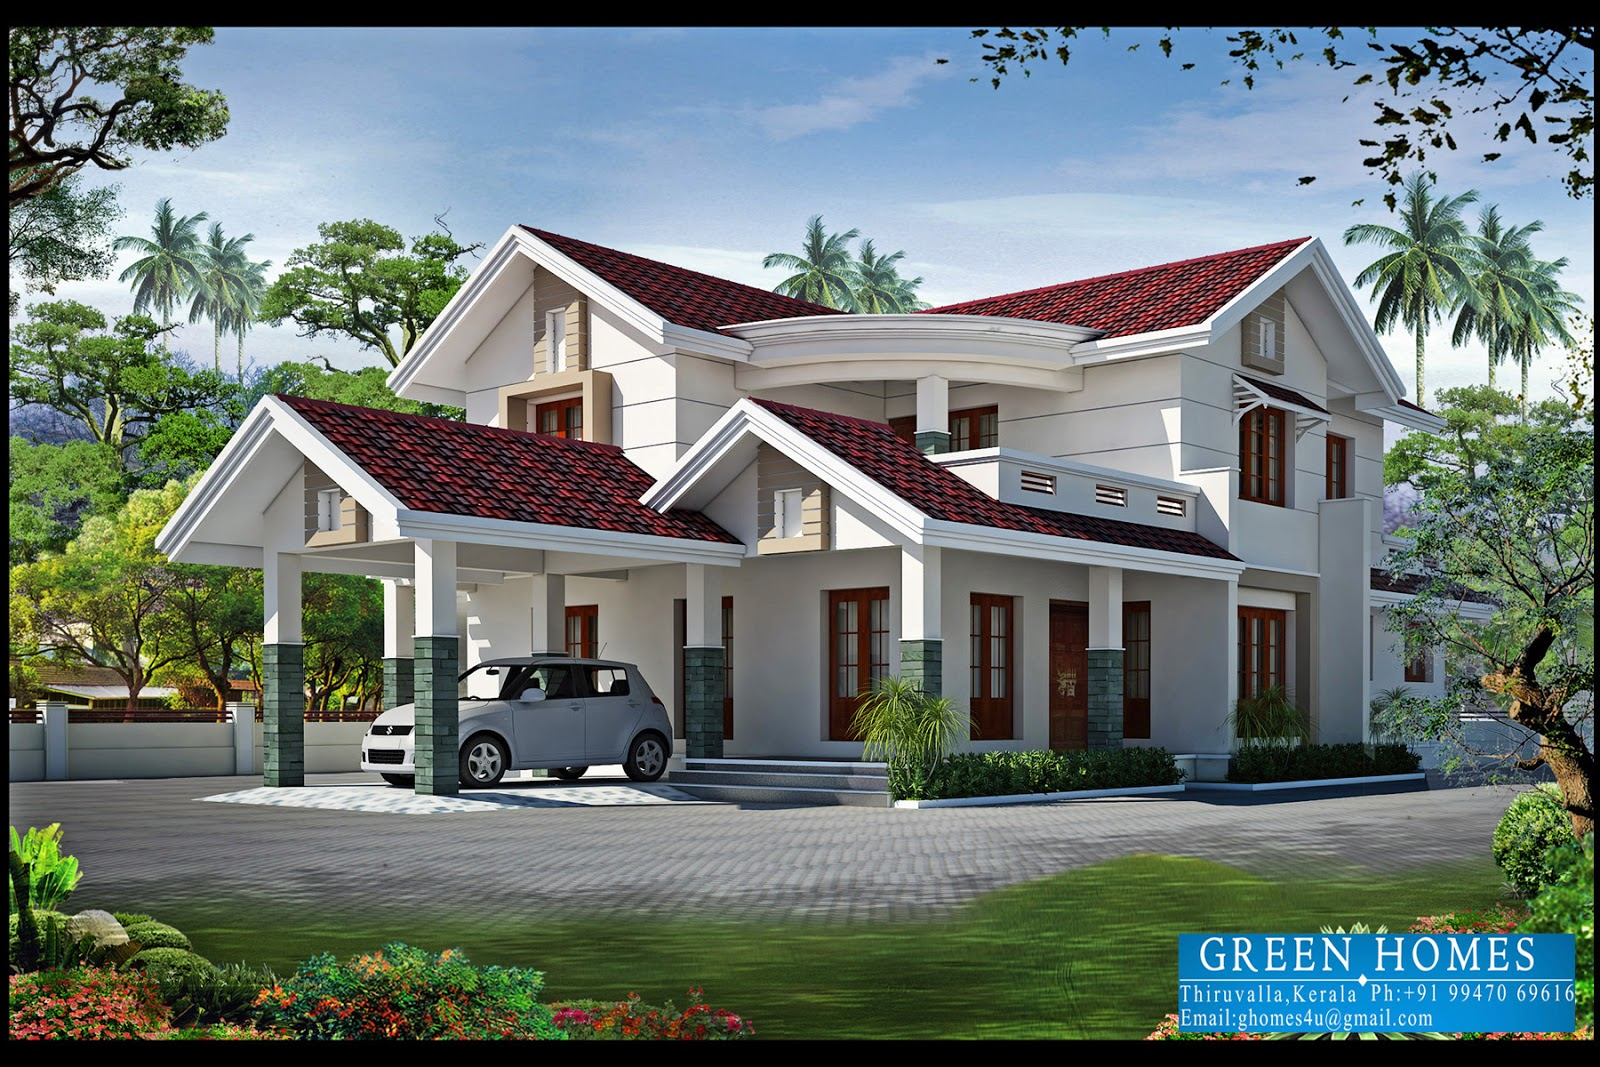 Green homes 4bhk kerala home design 2550 New home models and plans